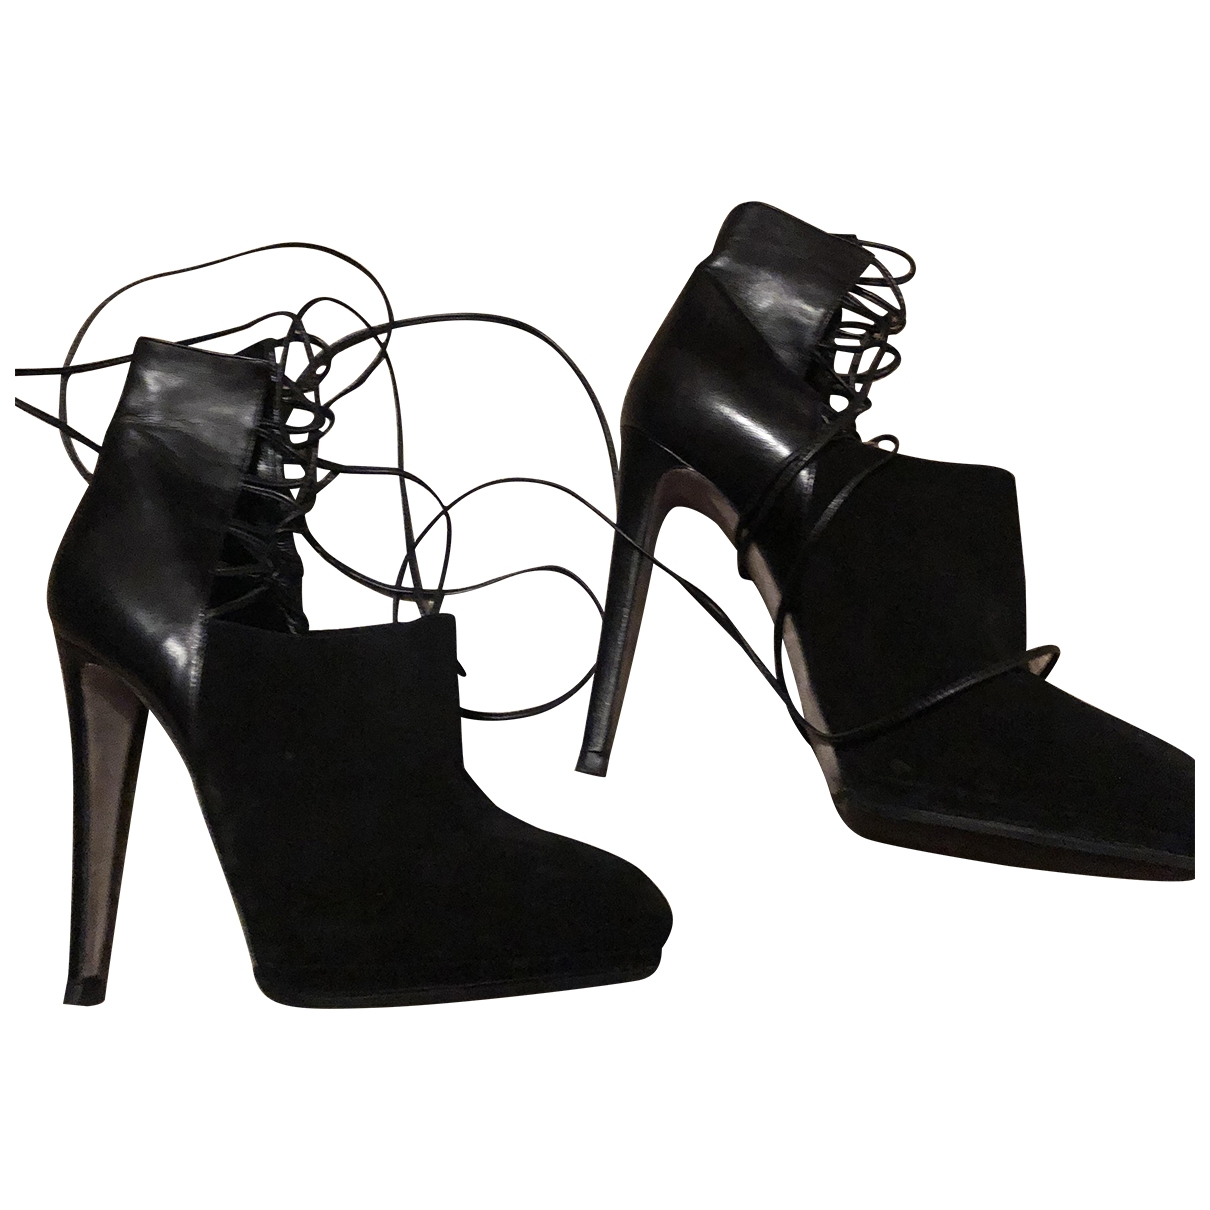 Sergio Rossi \N Black Leather Heels for Women 38 EU